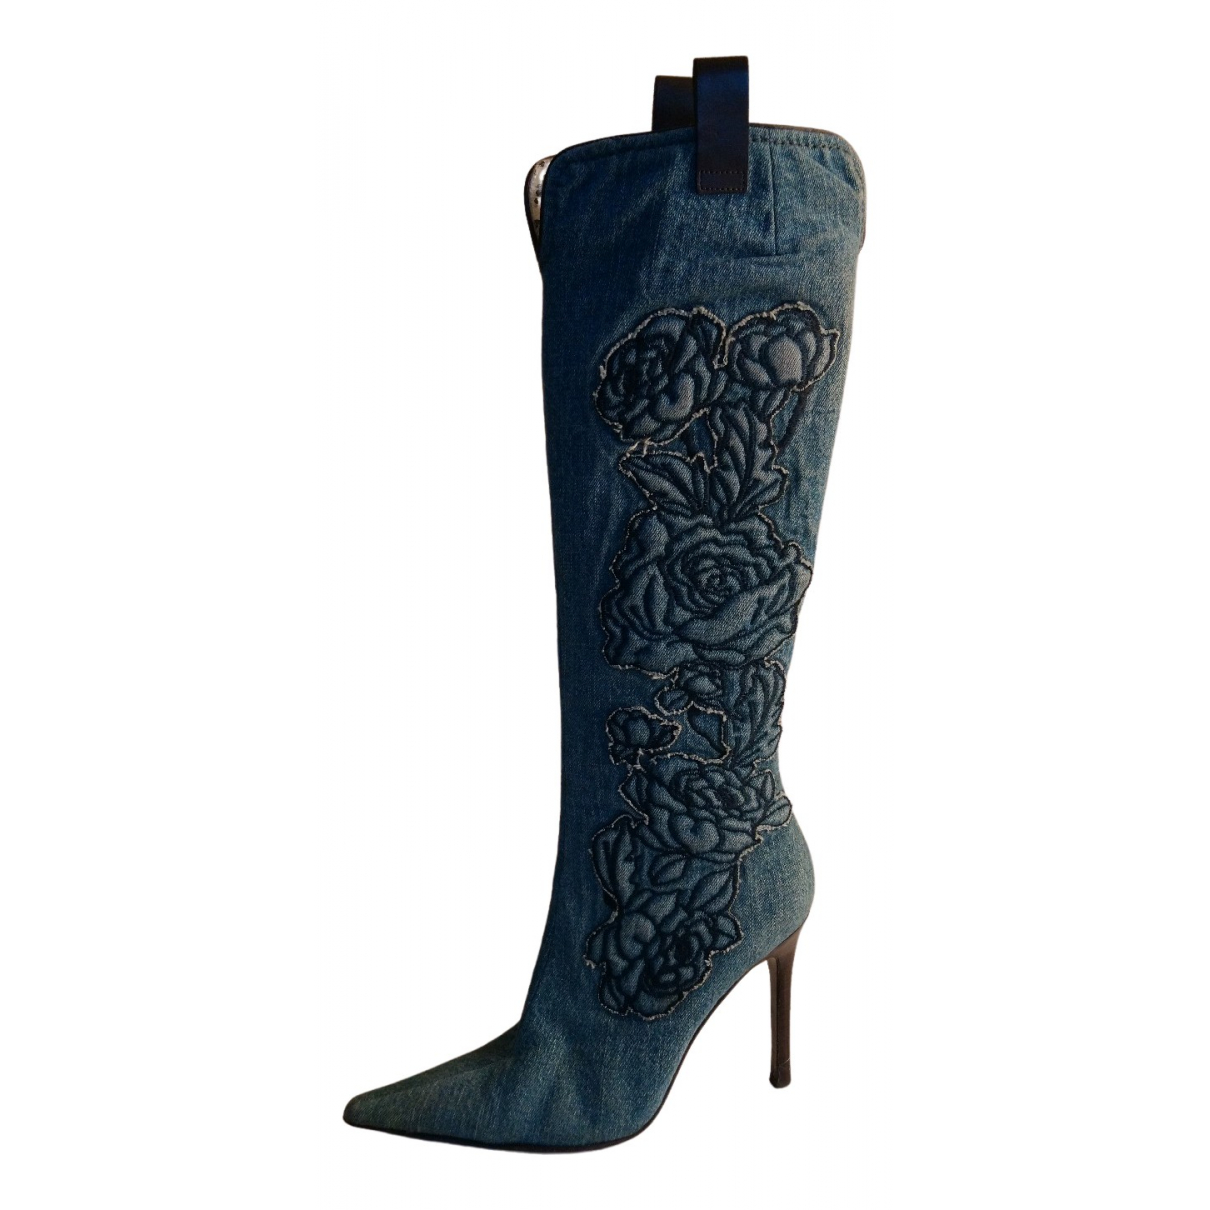 Roberto Cavalli N Blue Leather Boots for Women 37.5 EU